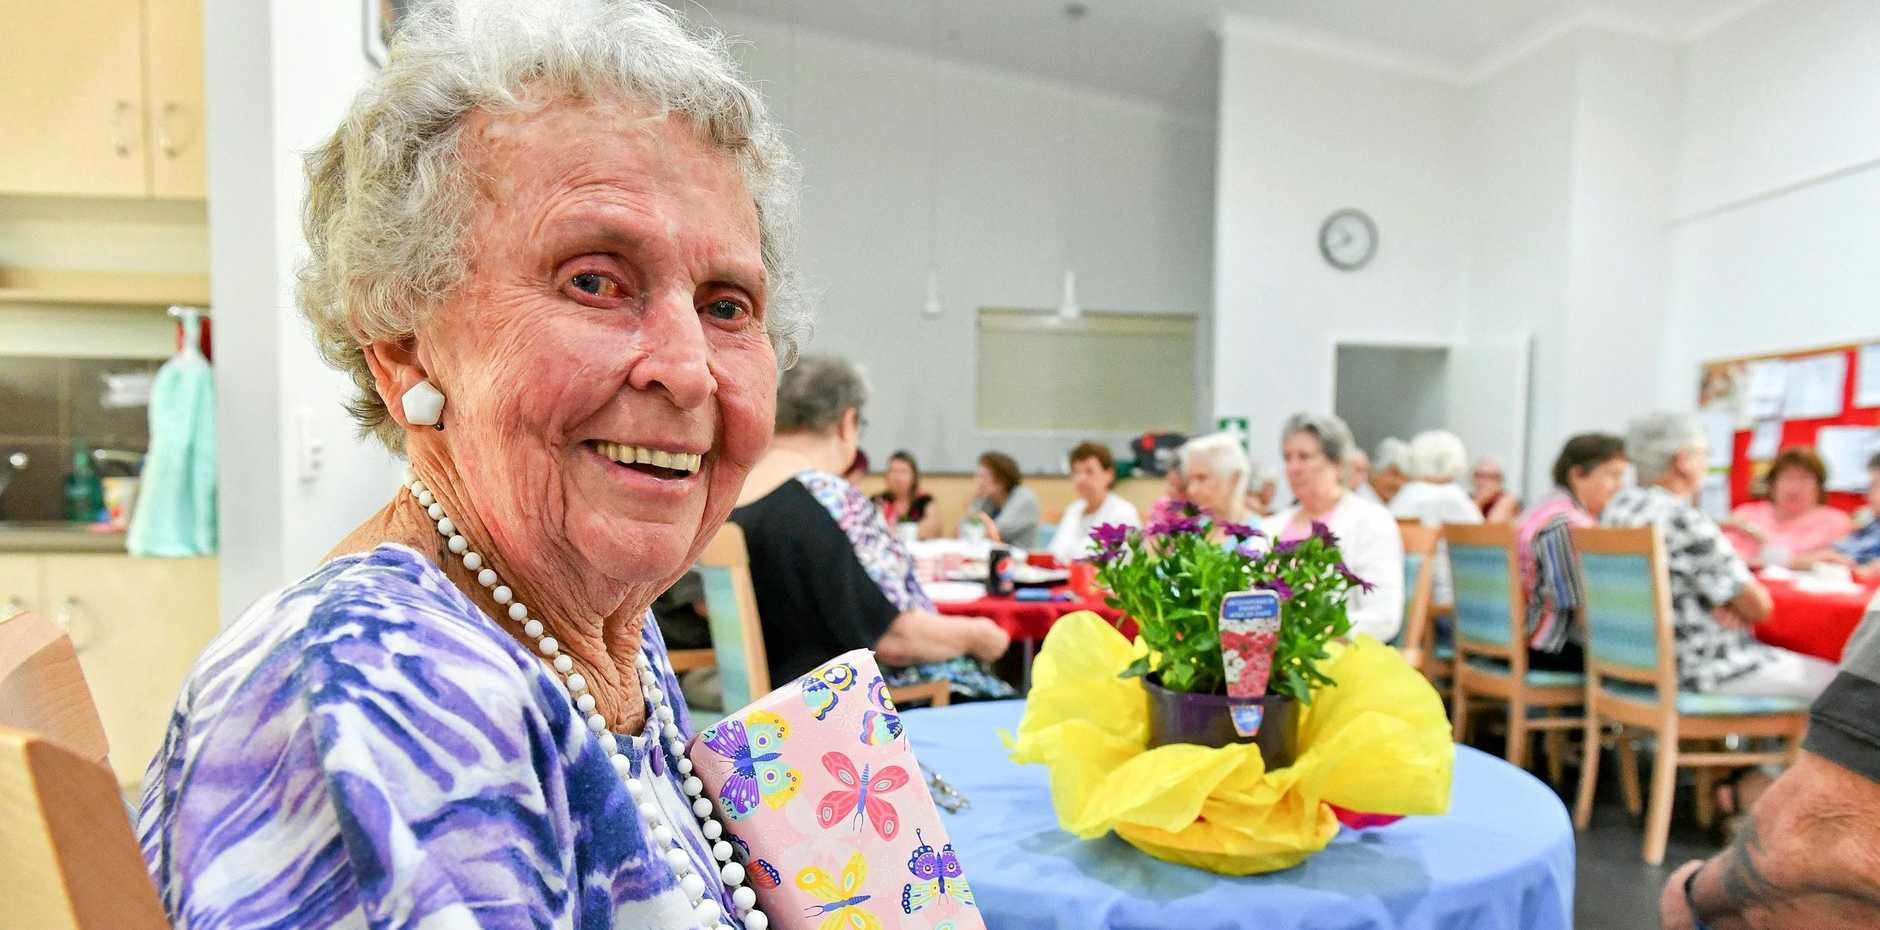 FULFILMENT: Merle Spann recently celebrated her 90th birthday.